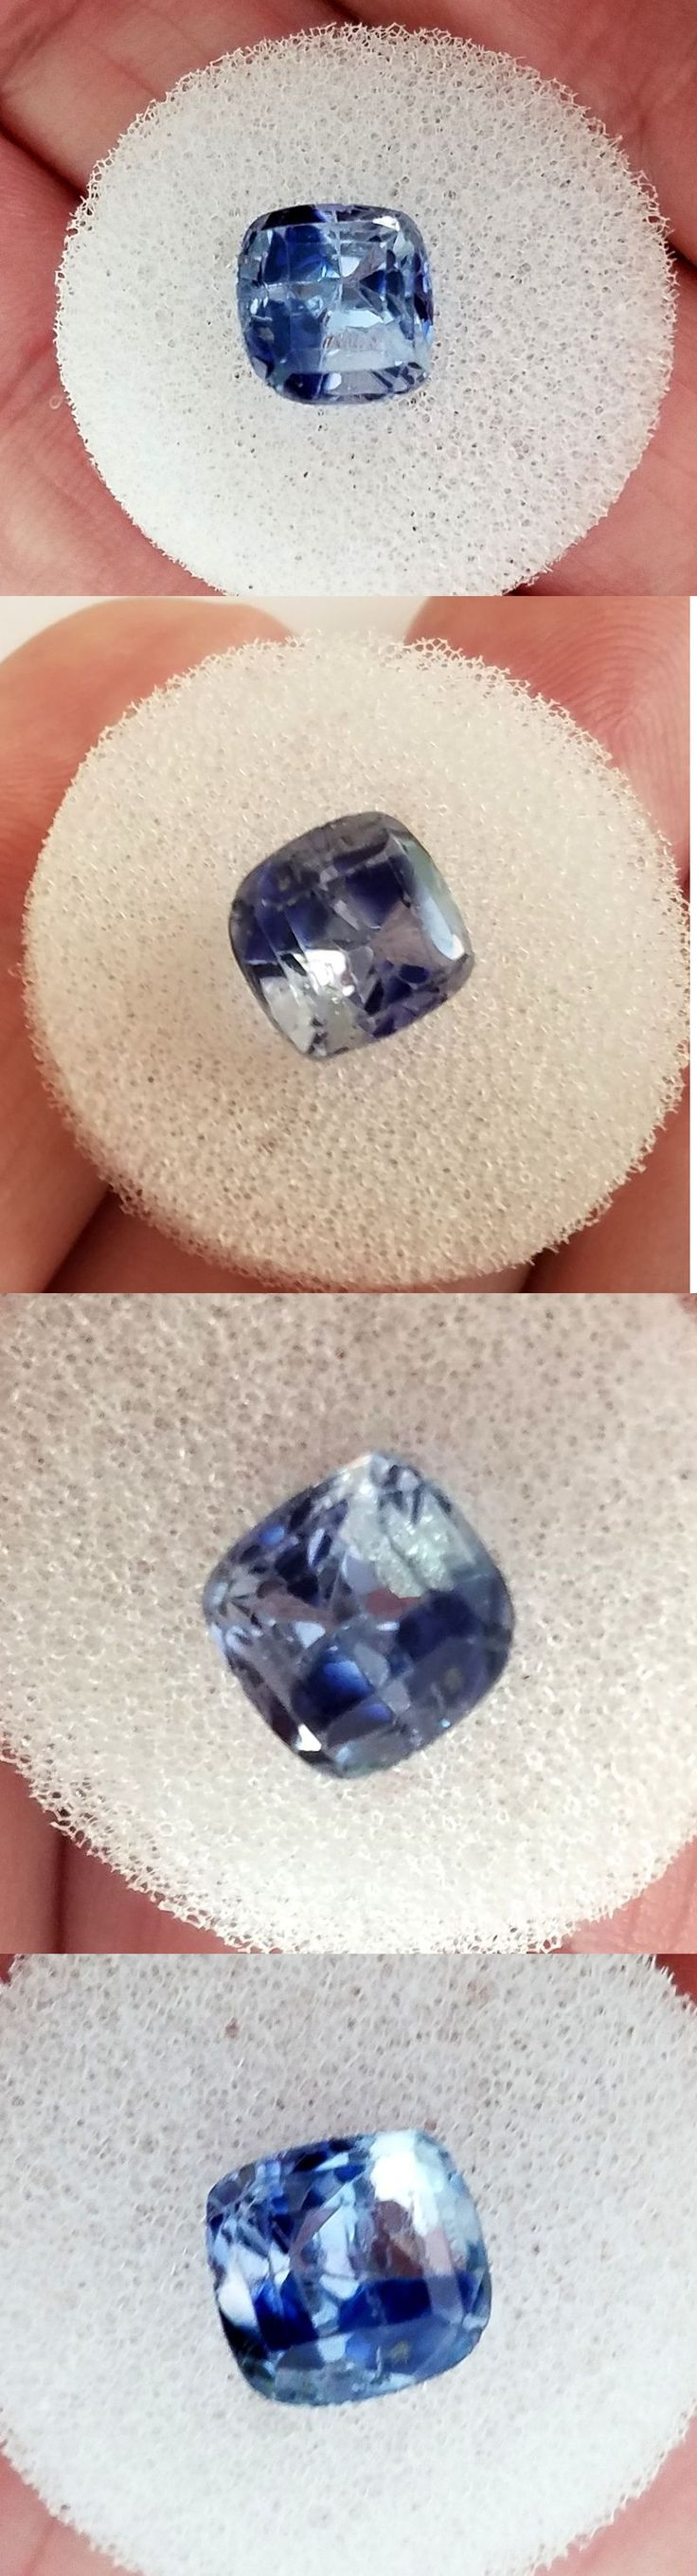 Natural Sapphires 4644: 4.97 Carat Natural Ceylon Blue Sapphire Genuine Loose Stone Cushion Cut -> BUY IT NOW ONLY: $299 on eBay!